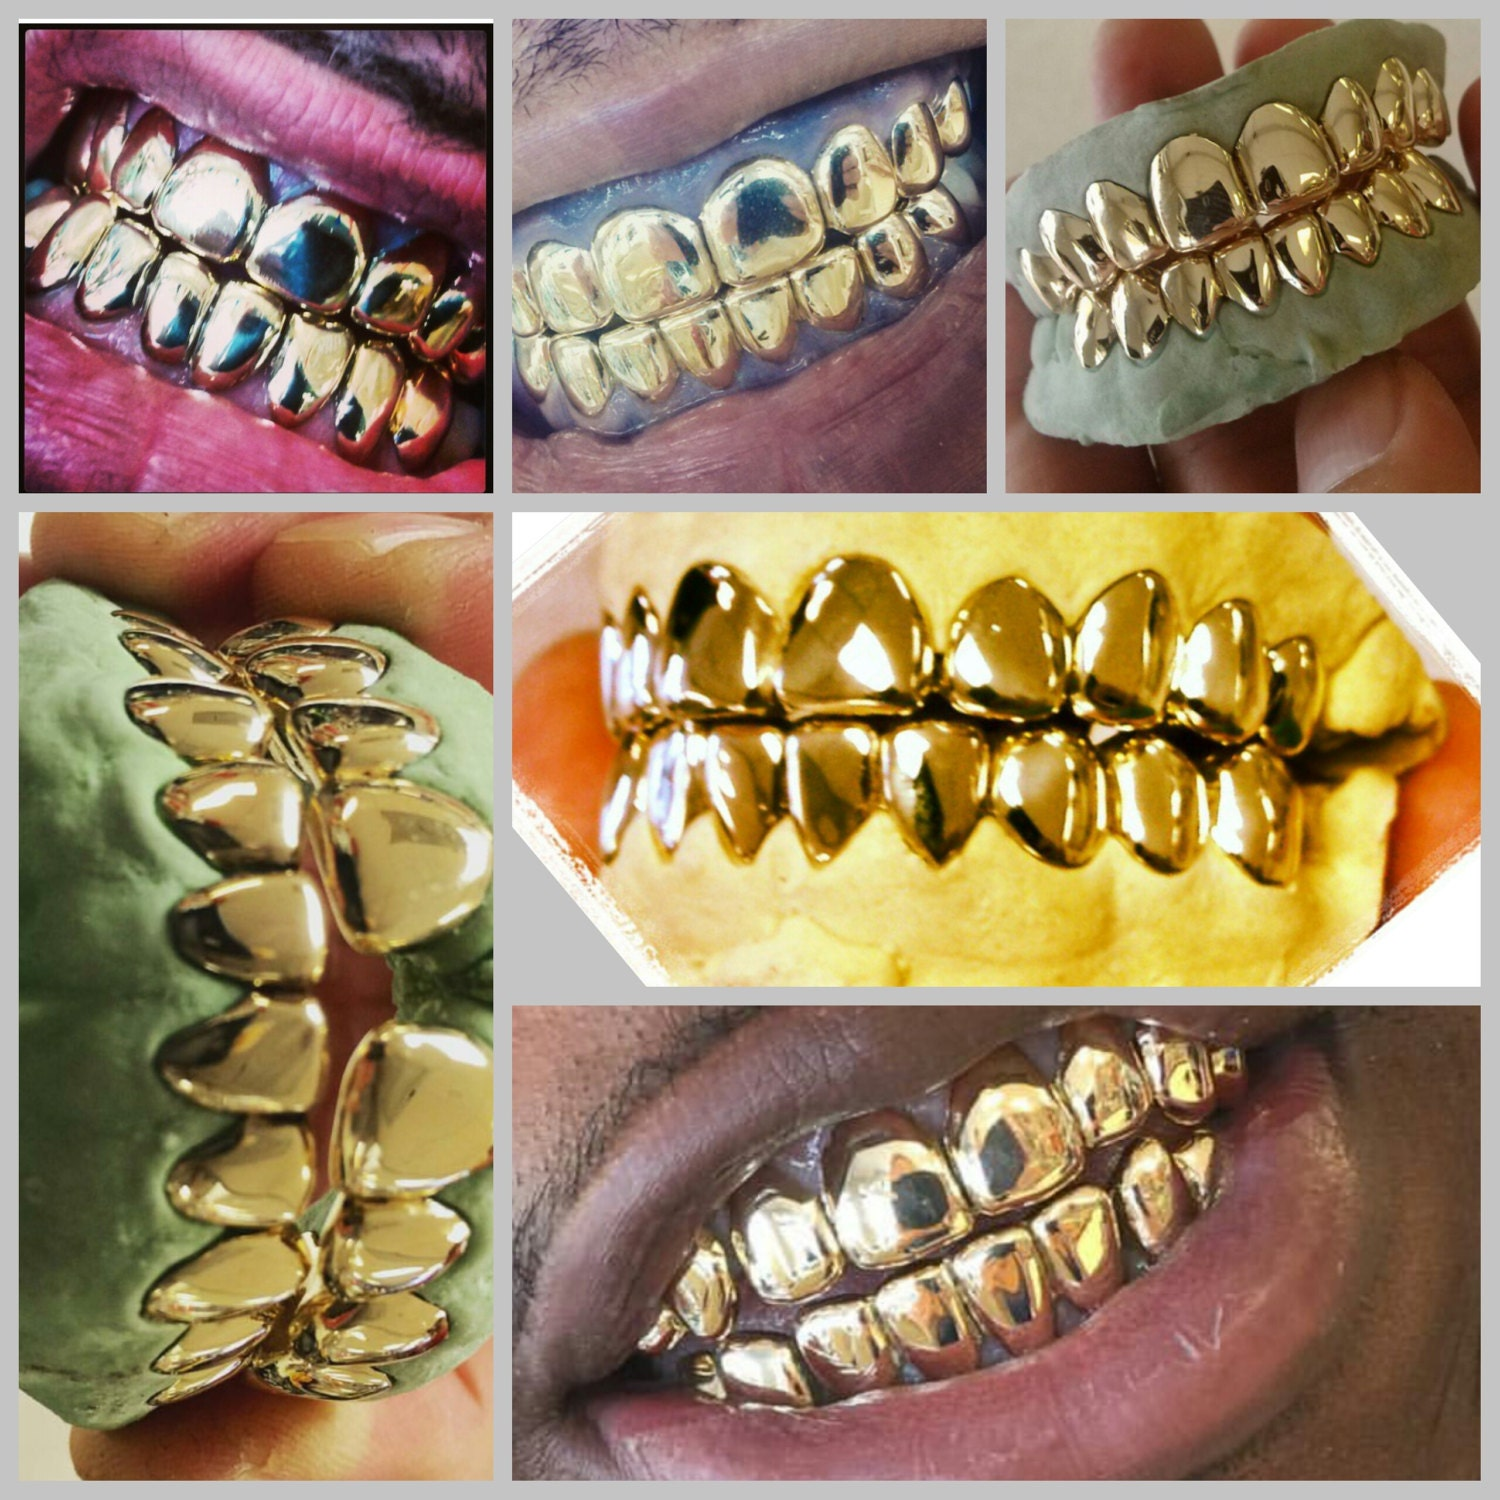 10k gold teeth 8 top and 8 bottom by grillzgodz on etsy